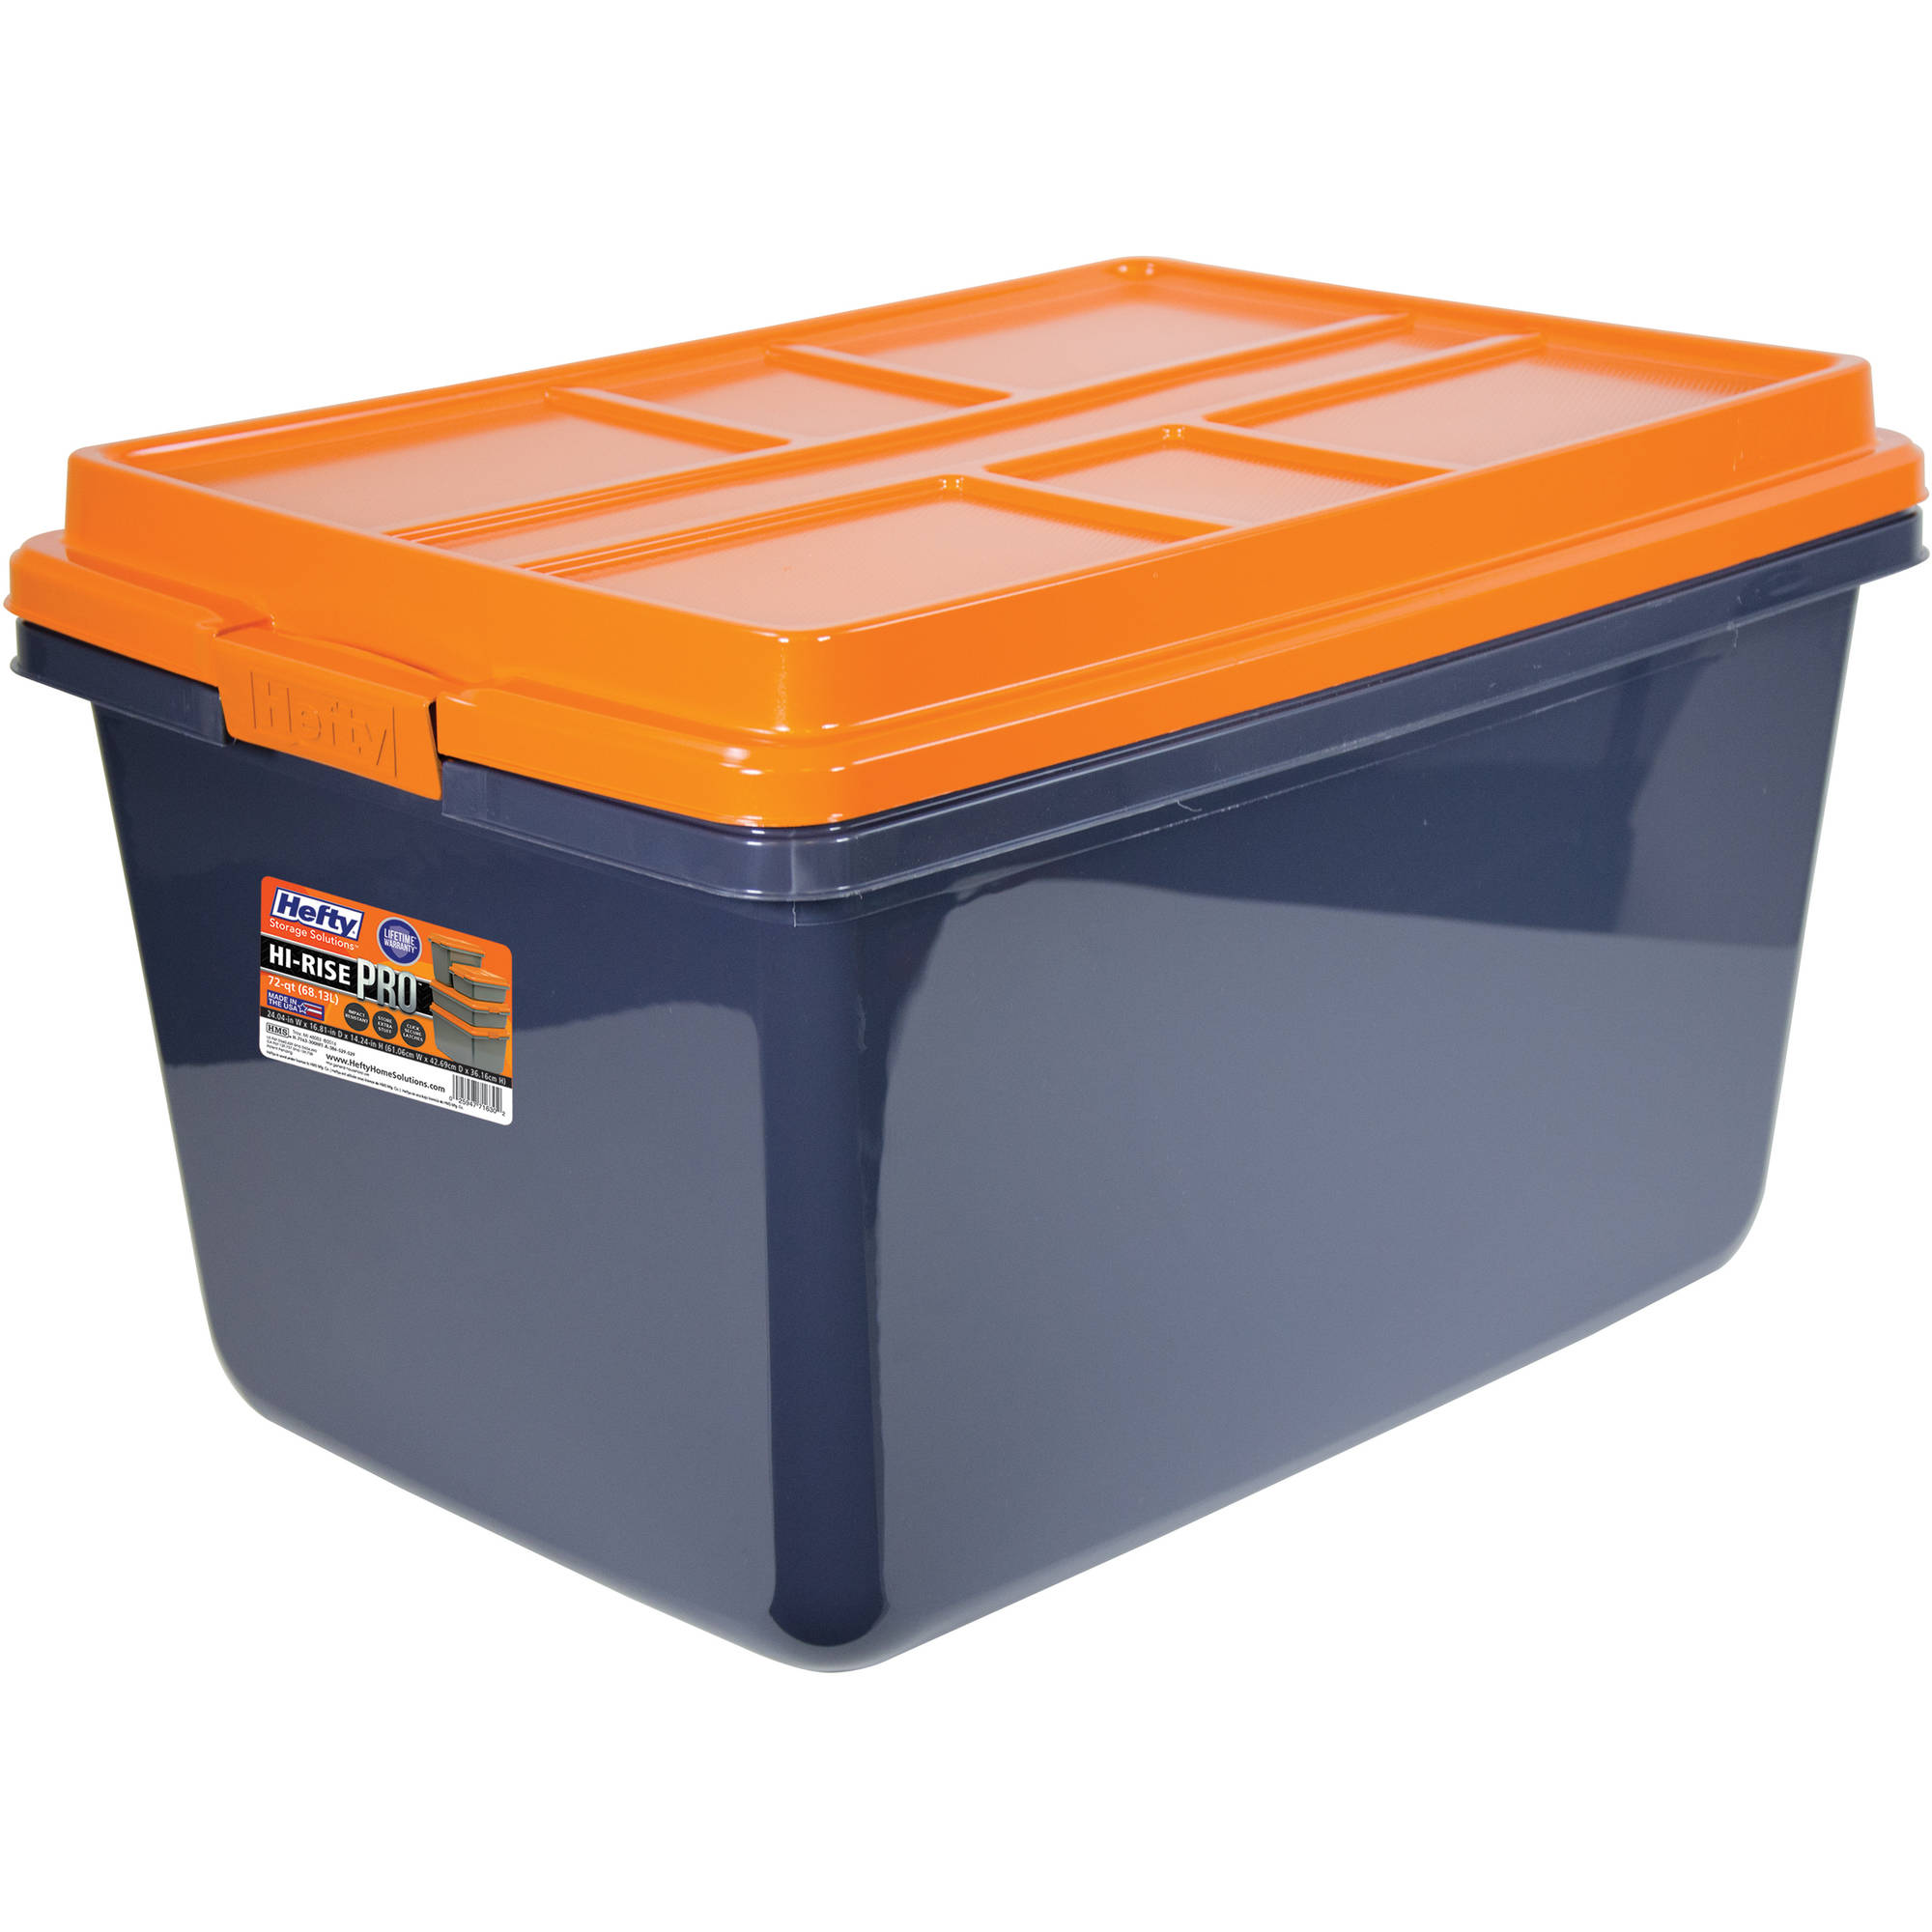 Hefty HI-RISE PRO Heavy Duty Storage Bins, 72 Qt. Latch Storage Box, Orange/Gray